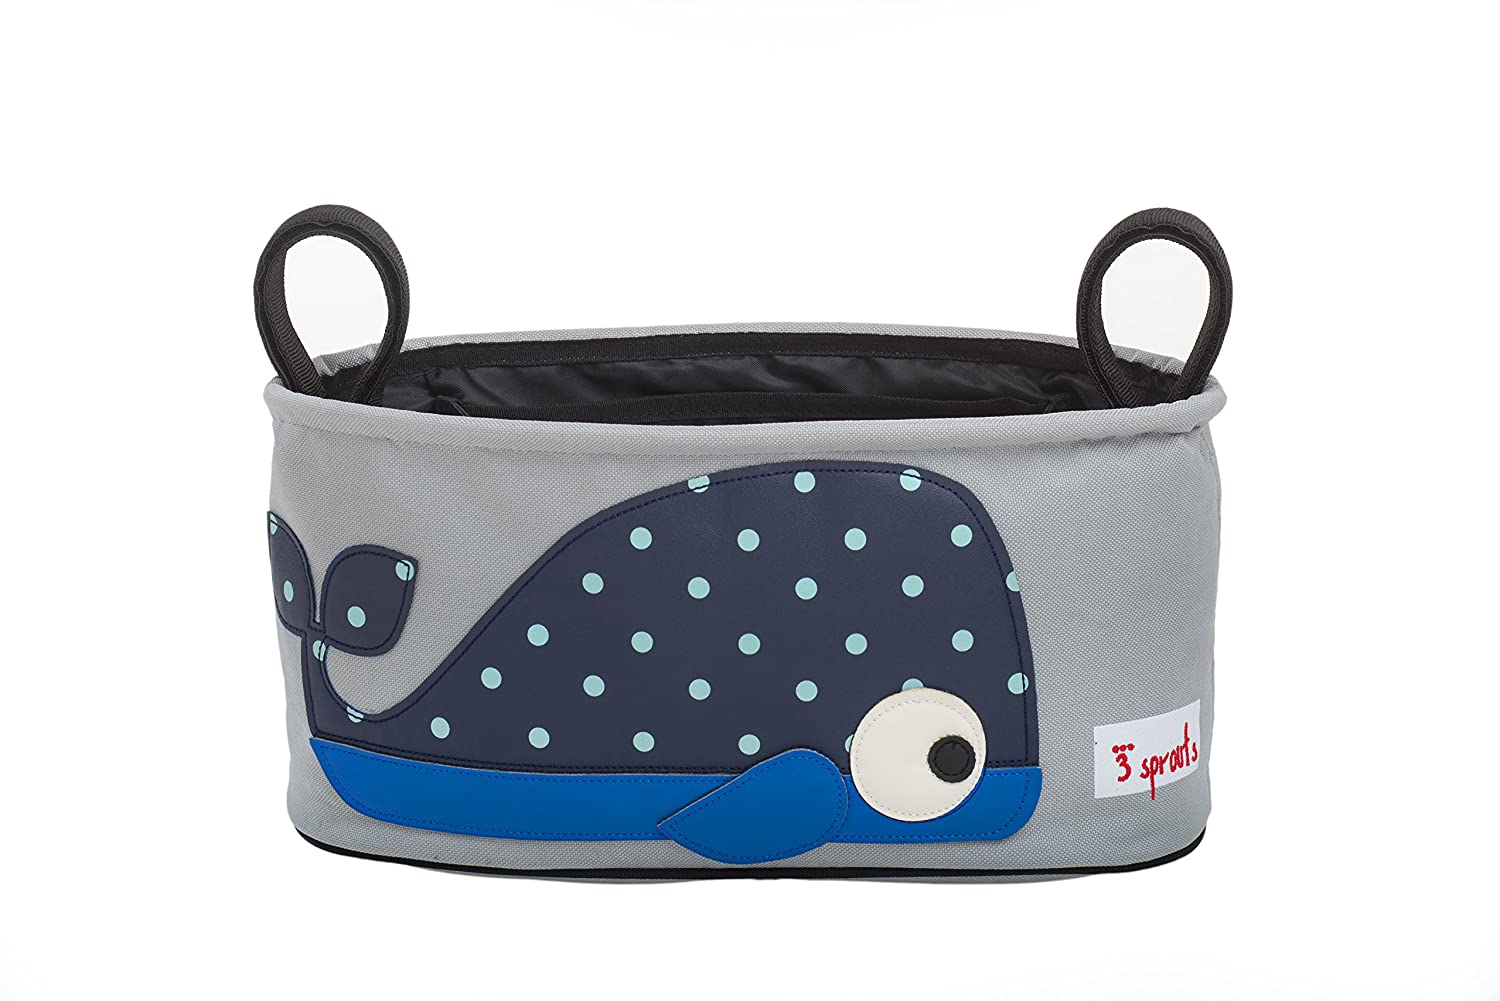 3 Sprouts Universal Stroller Organizer - Baby Jogger Caddy with Cup Holder, Whale